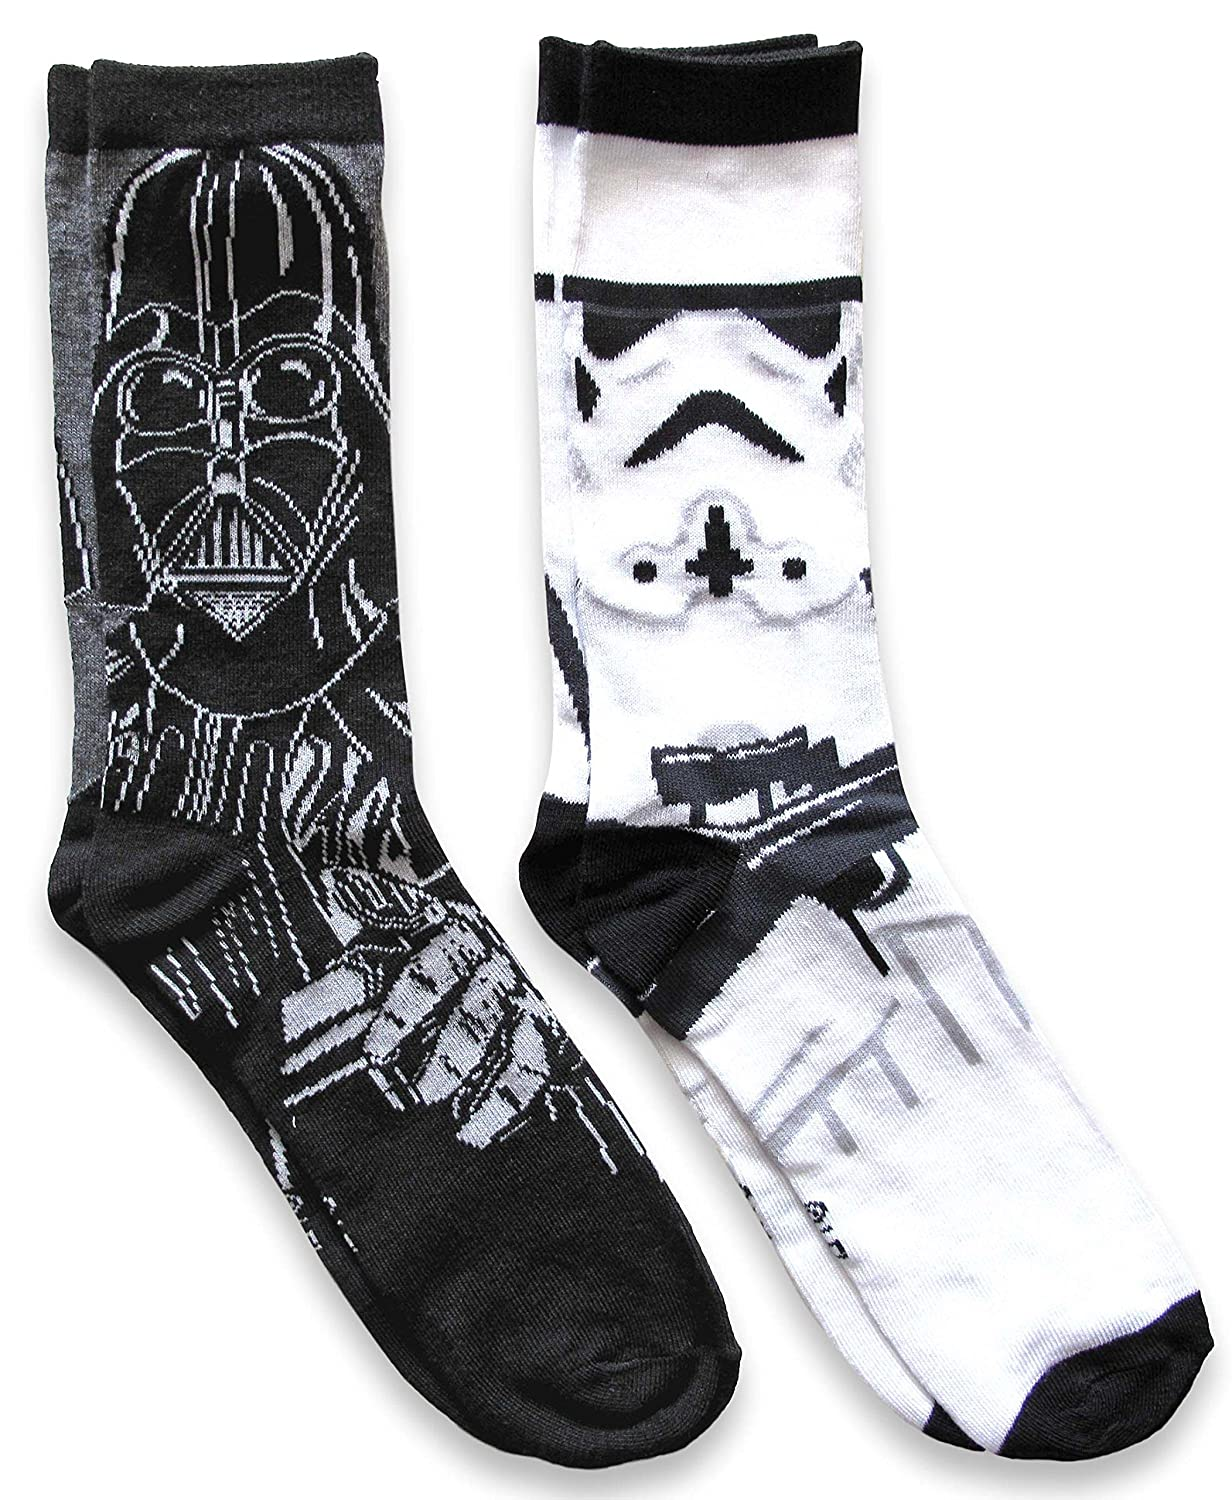 Star Wars Mens Darth Vader & Stormtrooper Casual Crew Socks 2 Pack Hypnotic Hats